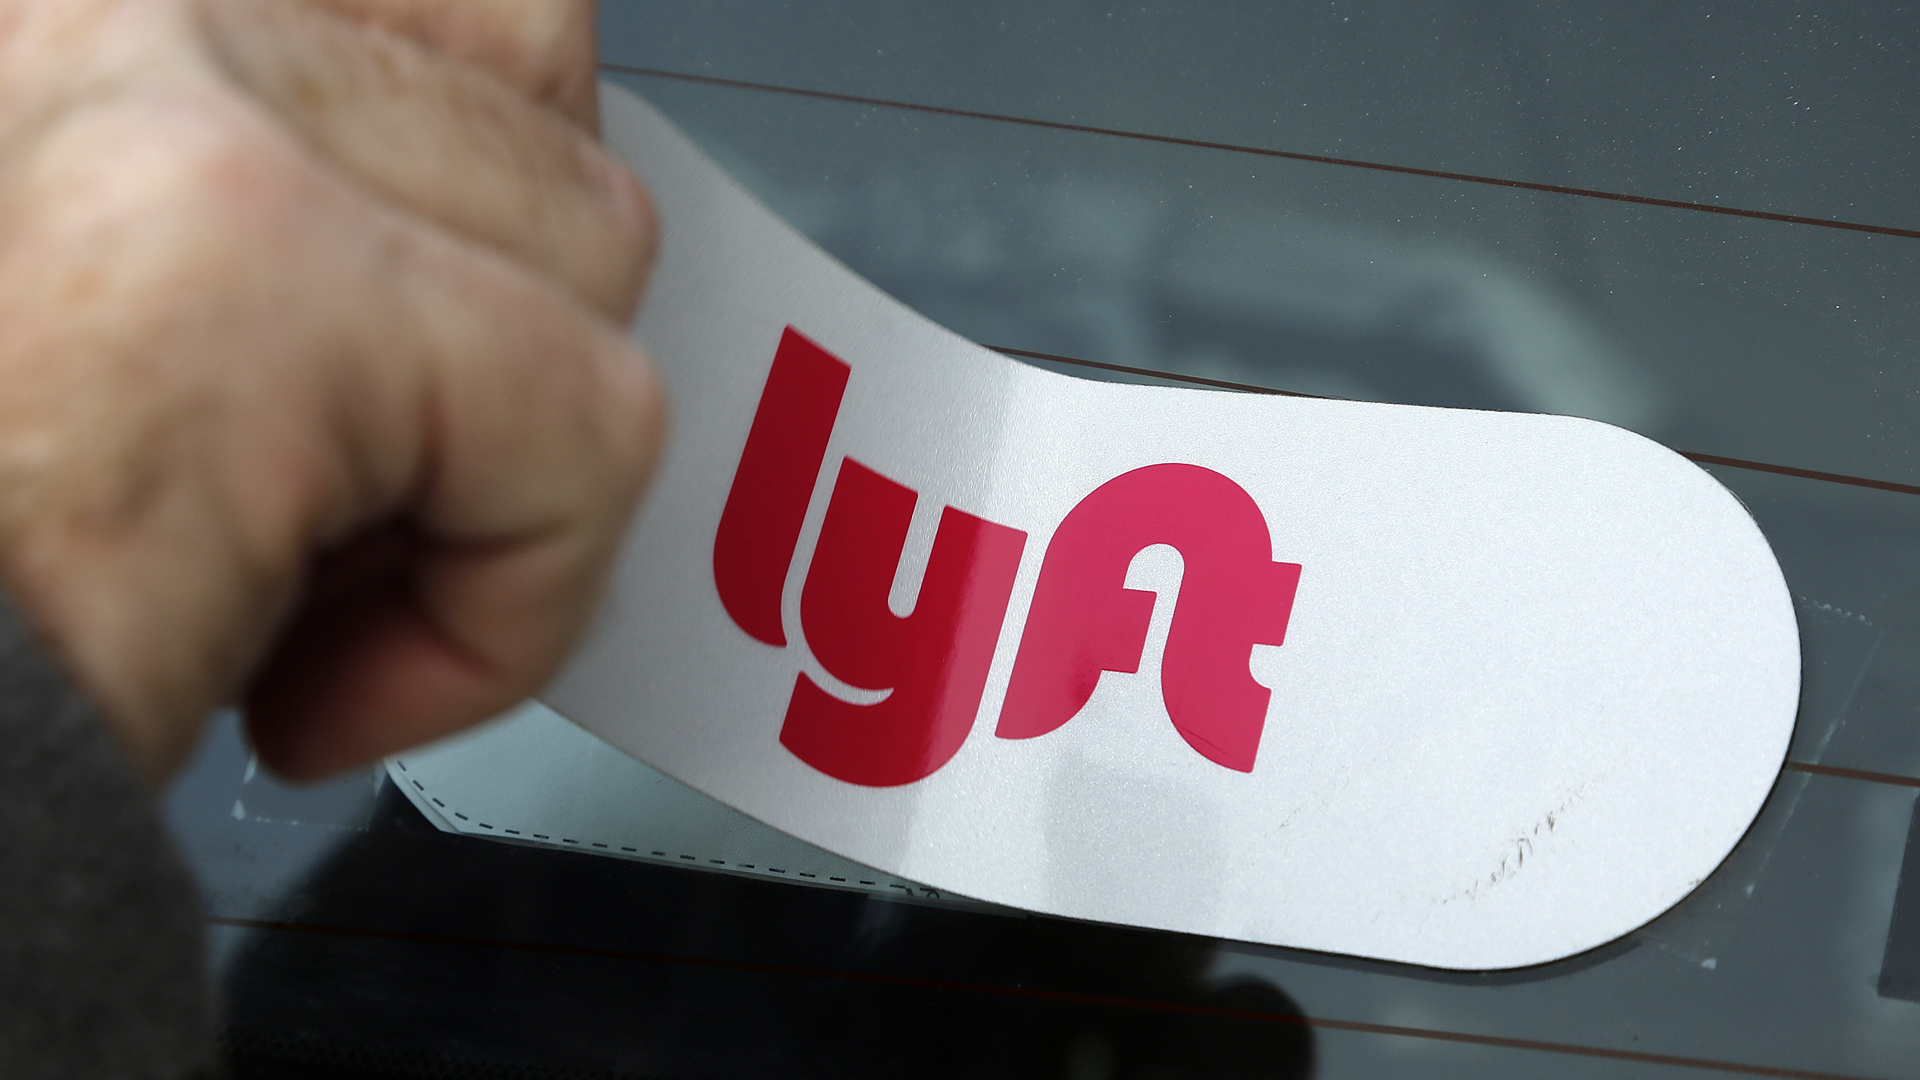 These women say Lyft can't coast on #deleteuber any longer